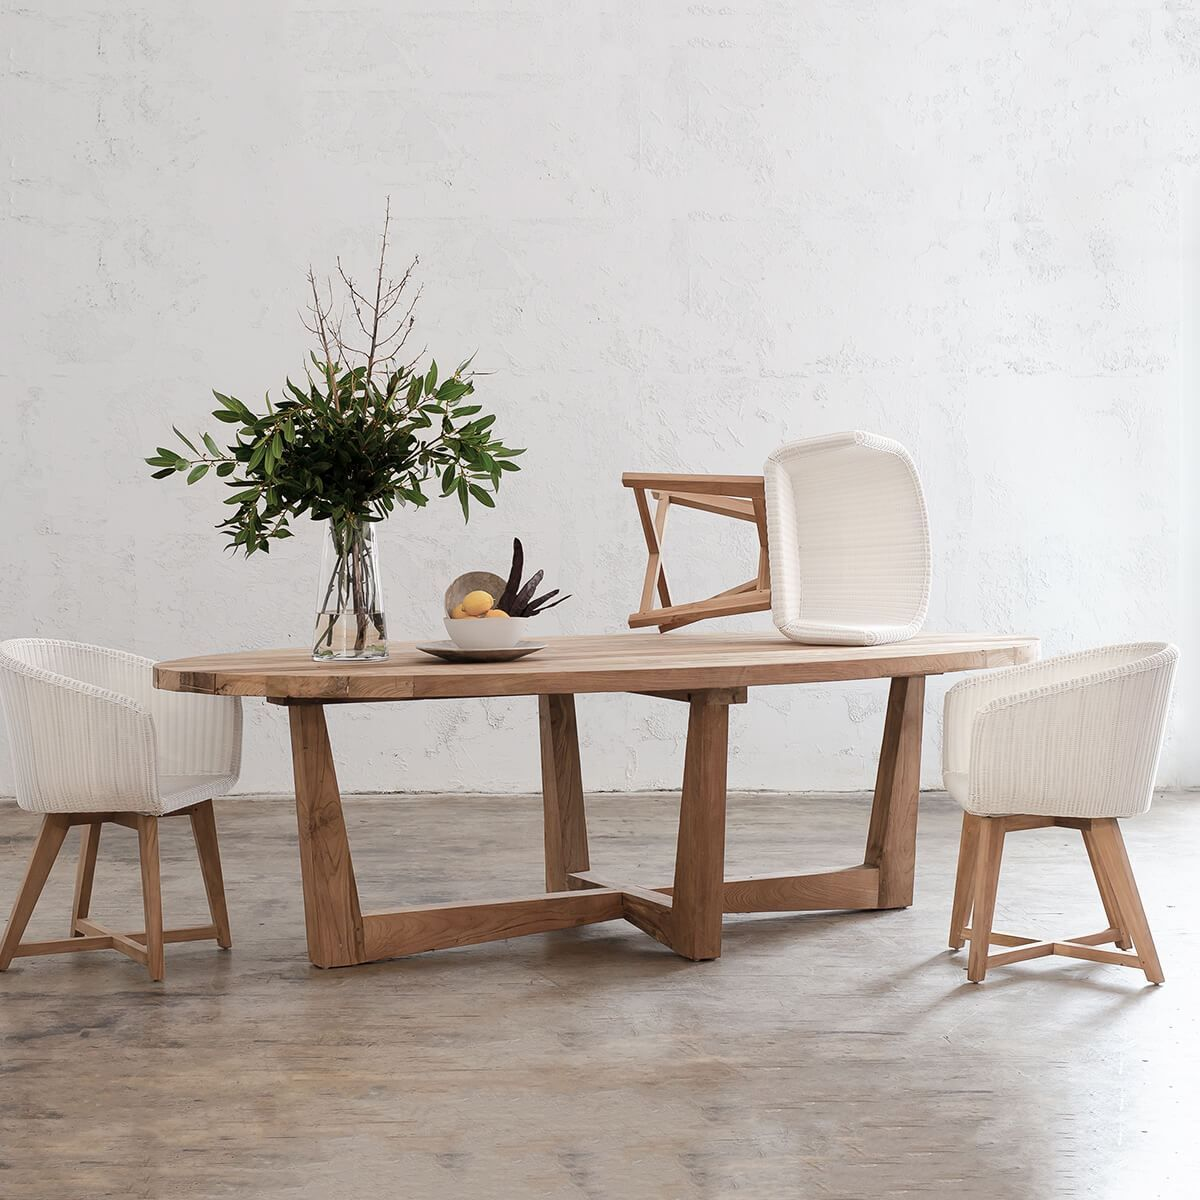 Florence Reclaimed Teak Oval Dining Table 2 6m In 2020 Dining